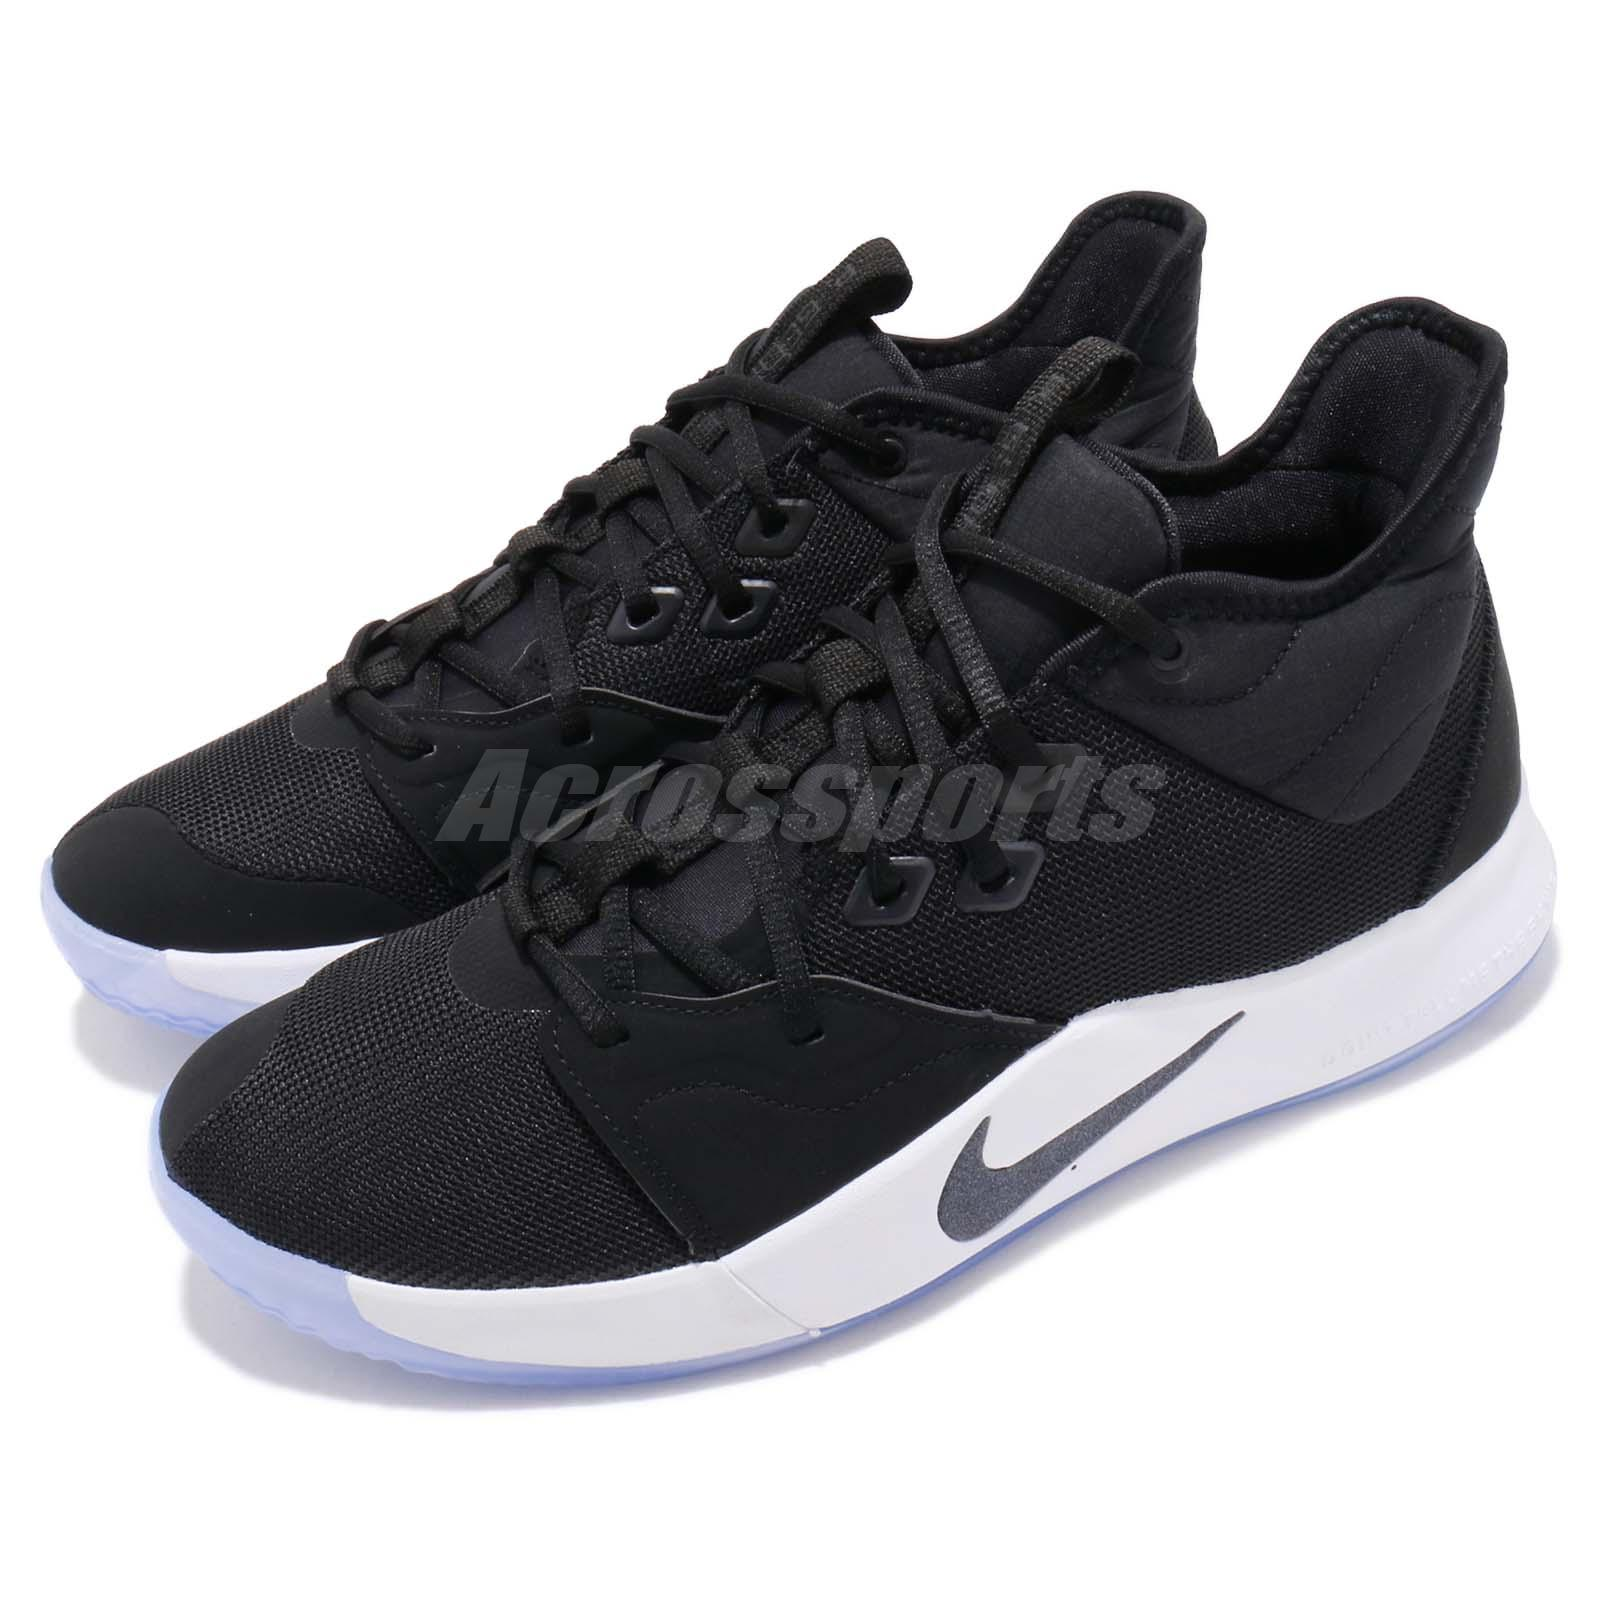 cheap for discount 8e807 476c1 Details about Nike PG 3 EP Paul George Black White Mens Basketball Shoes  Sneakers AO2608-001